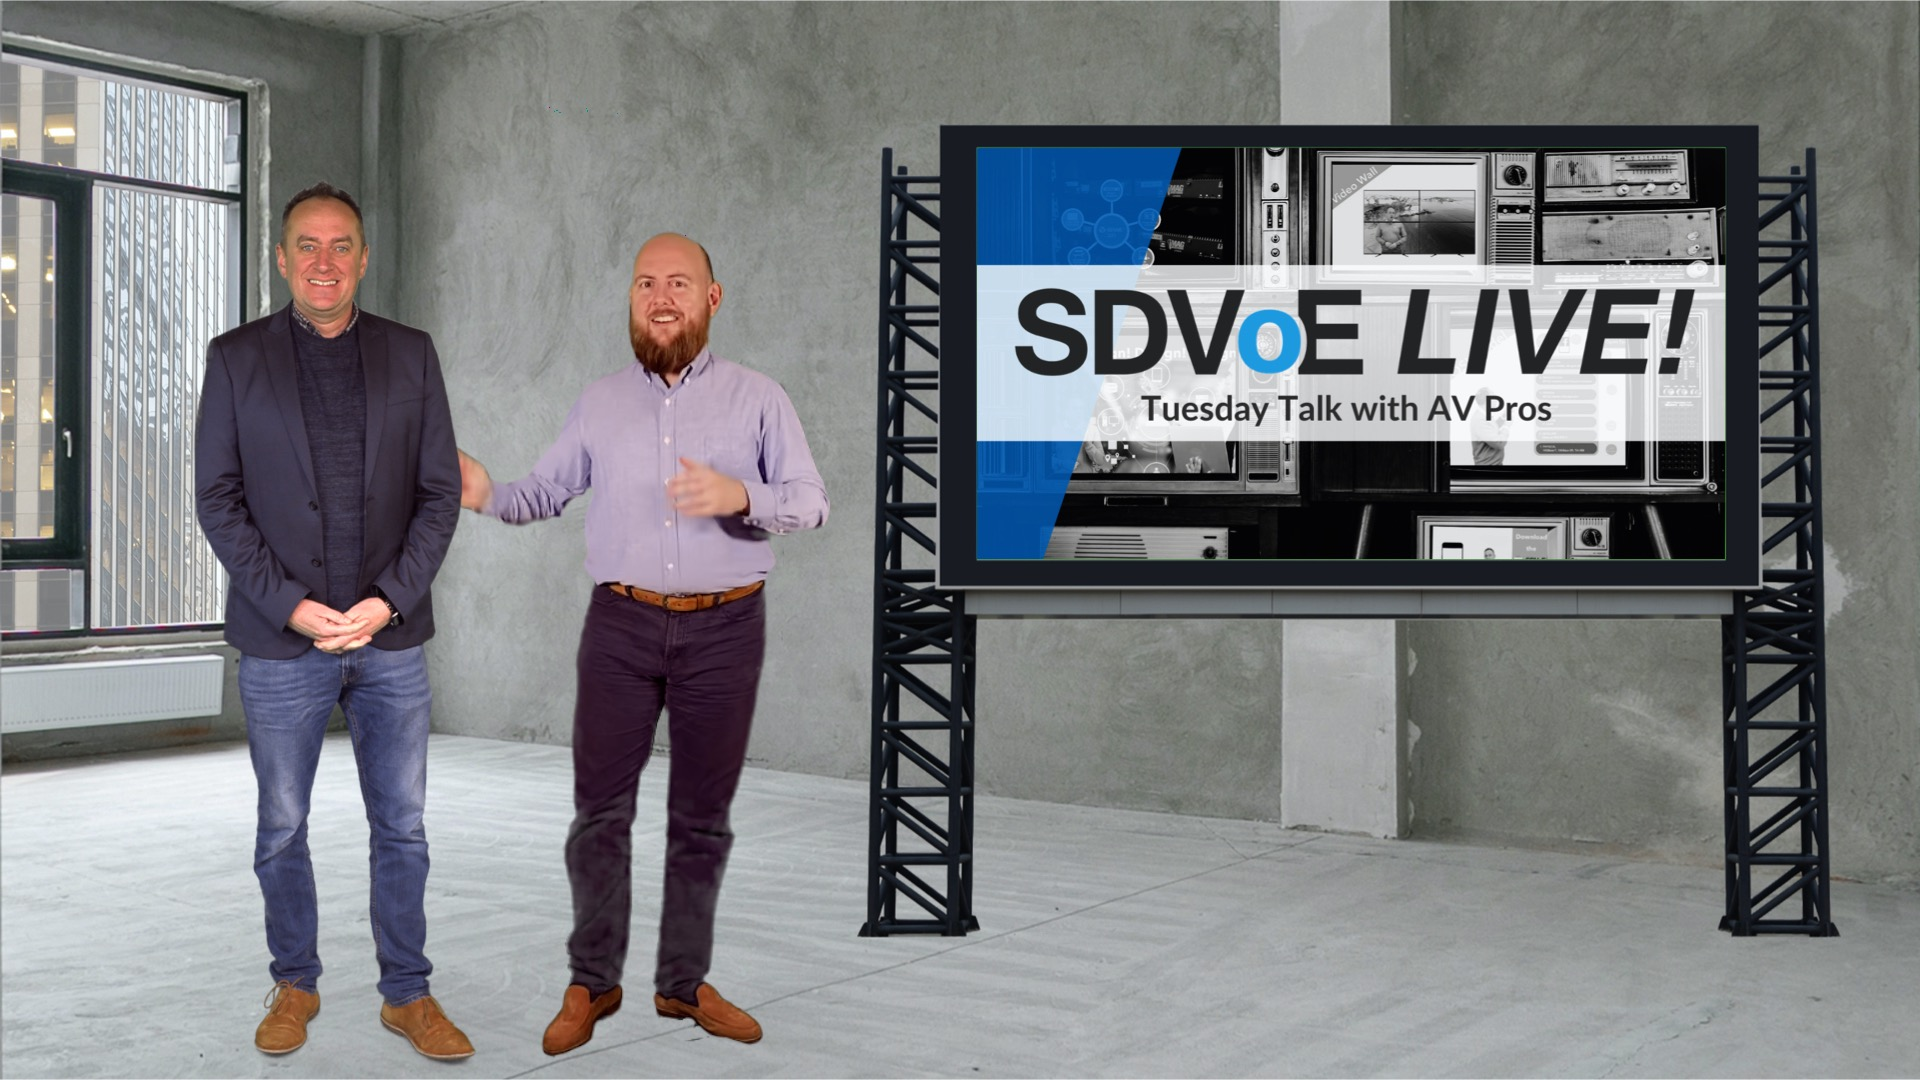 SDVoE LIVE! Episode 16: Season One Finale - In Control: from IR to APIs